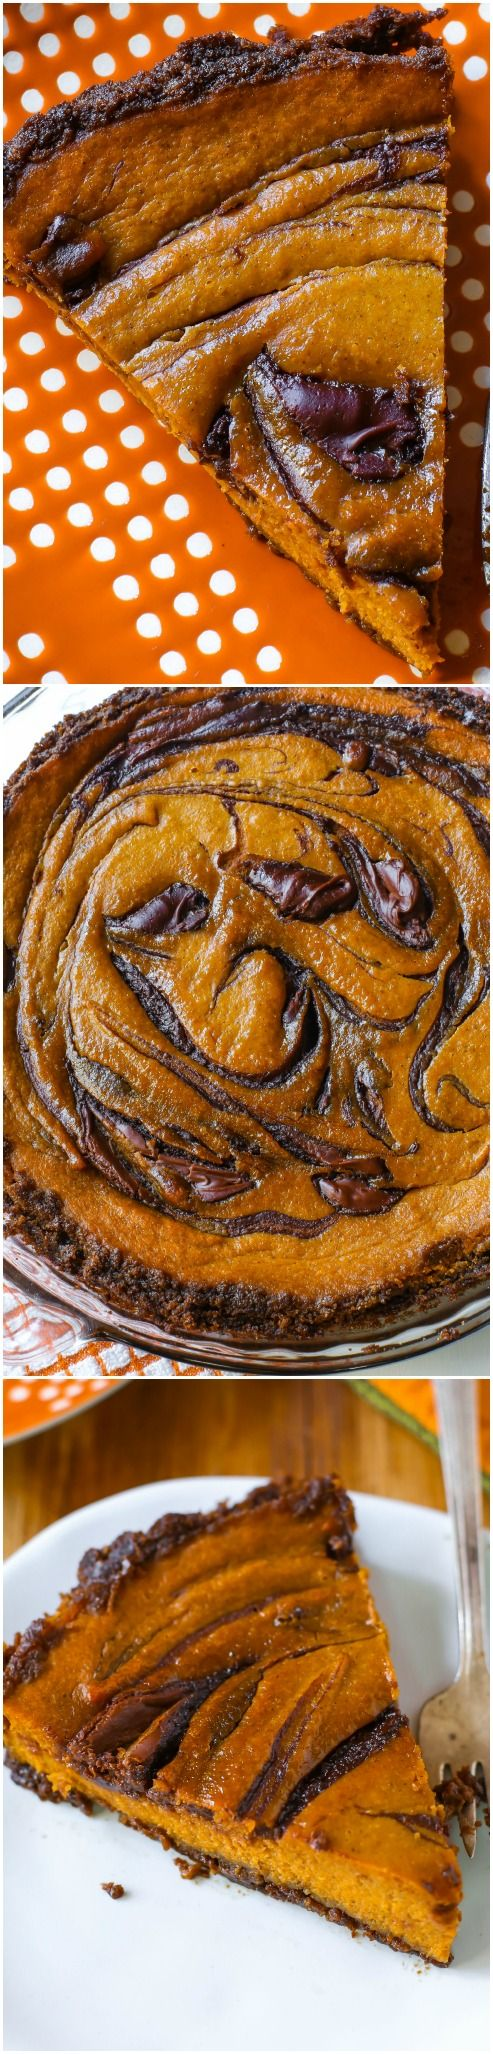 Thanksgiving dessert: A twist on traditional pumpkin pie - swirled with decadent Nutella and baked in a gingersnap crust!